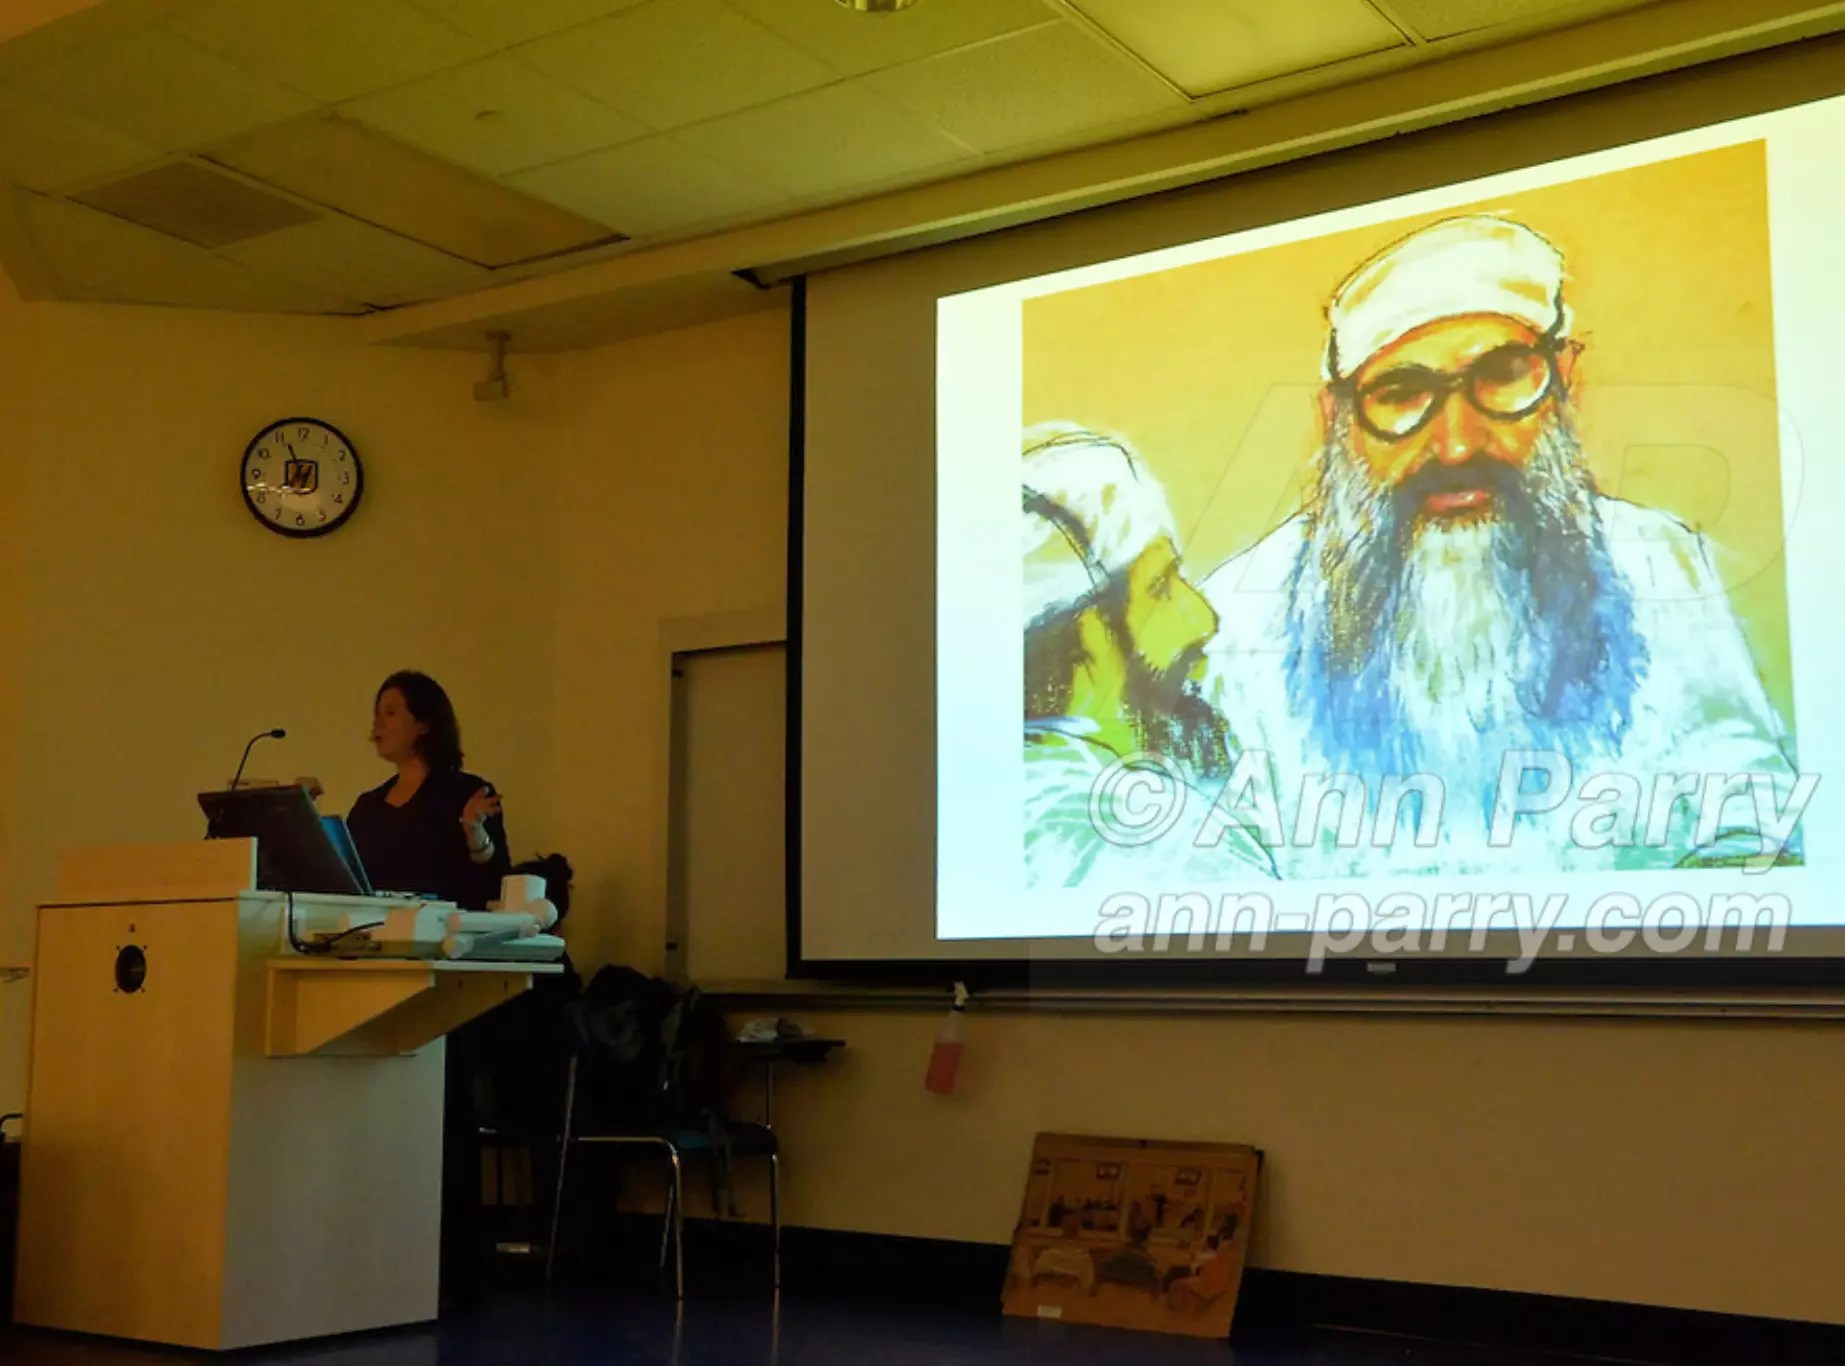 Hempstead, NY, U.S. 12th Nov. 2013. JANET HAMLIN, a courtroom artist covering the military tribunals at Guantanamo Bay since 2006, shows her drawings and discusses her work at Hofstra University. Much of the time she was the only journalist providing a visual record of the events at the United States naval base in Cuba, and her new book 'Sketching Guantanomo' is a collection of her images.